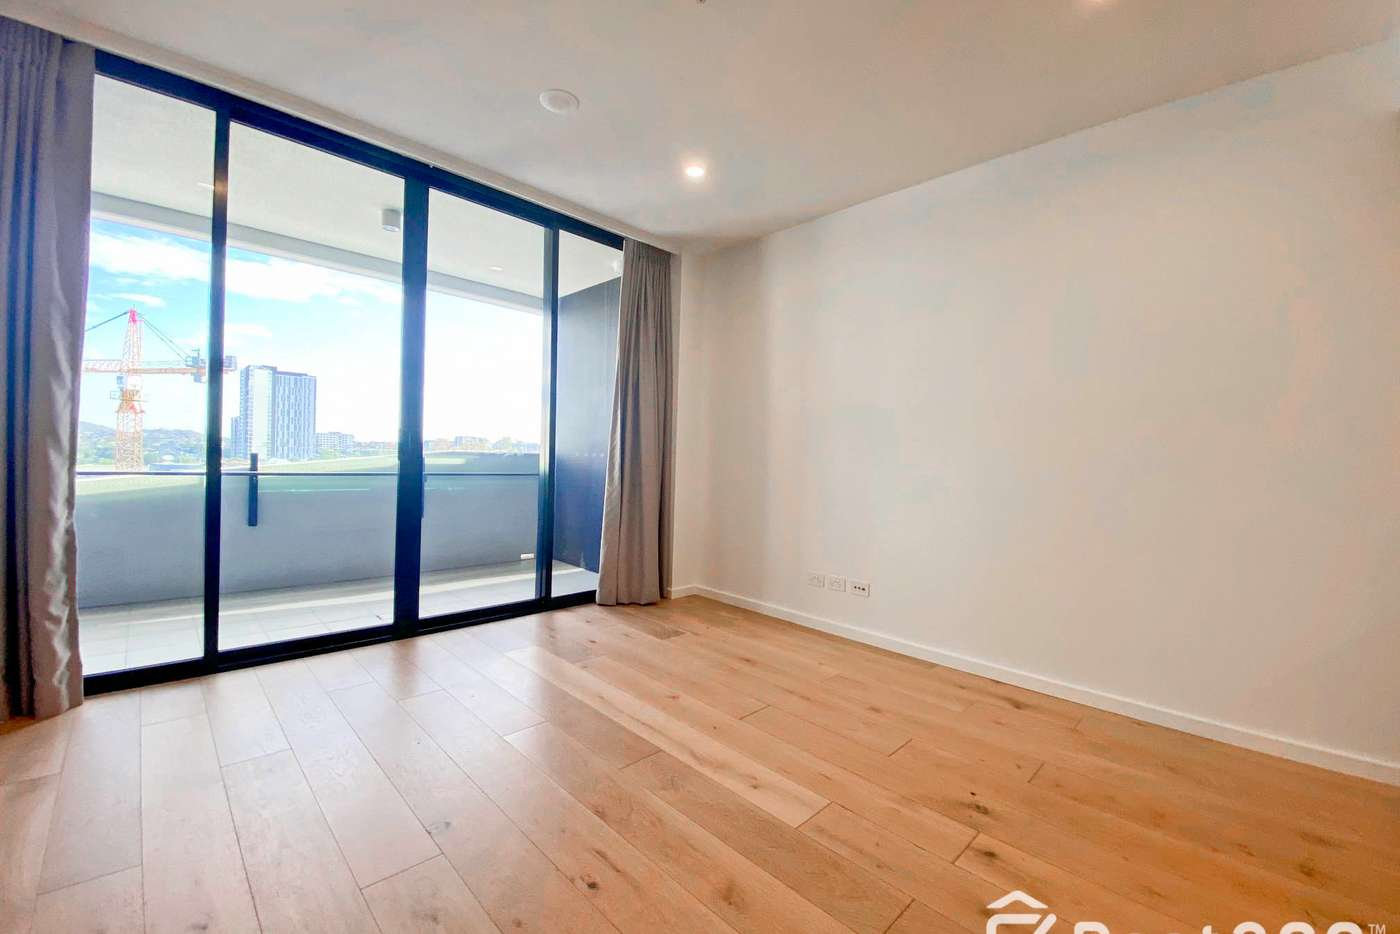 Seventh view of Homely apartment listing, 901/17 Deshon Street, Woolloongabba QLD 4102